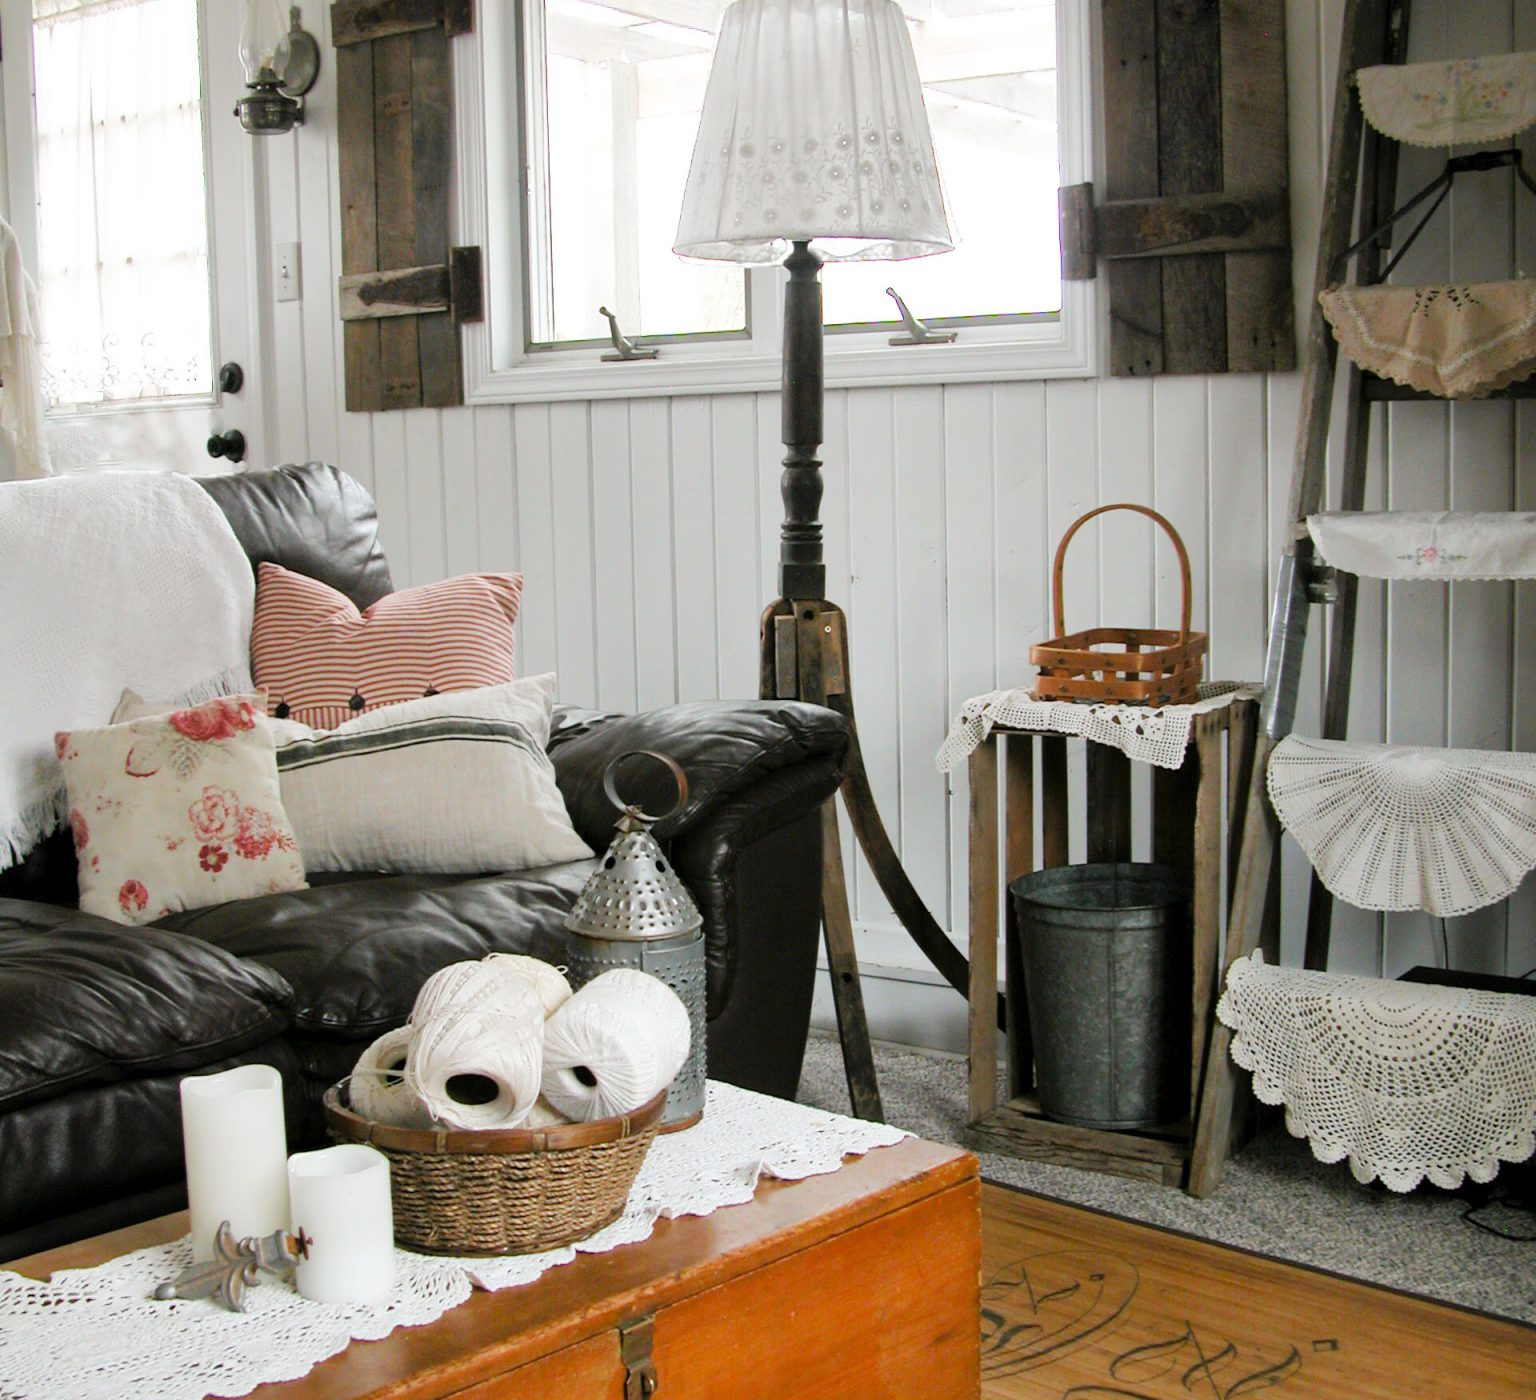 Antique Rockers Turned into Funky Floor Lamp | Prodigal PIeces | www.prodigalpieces.com